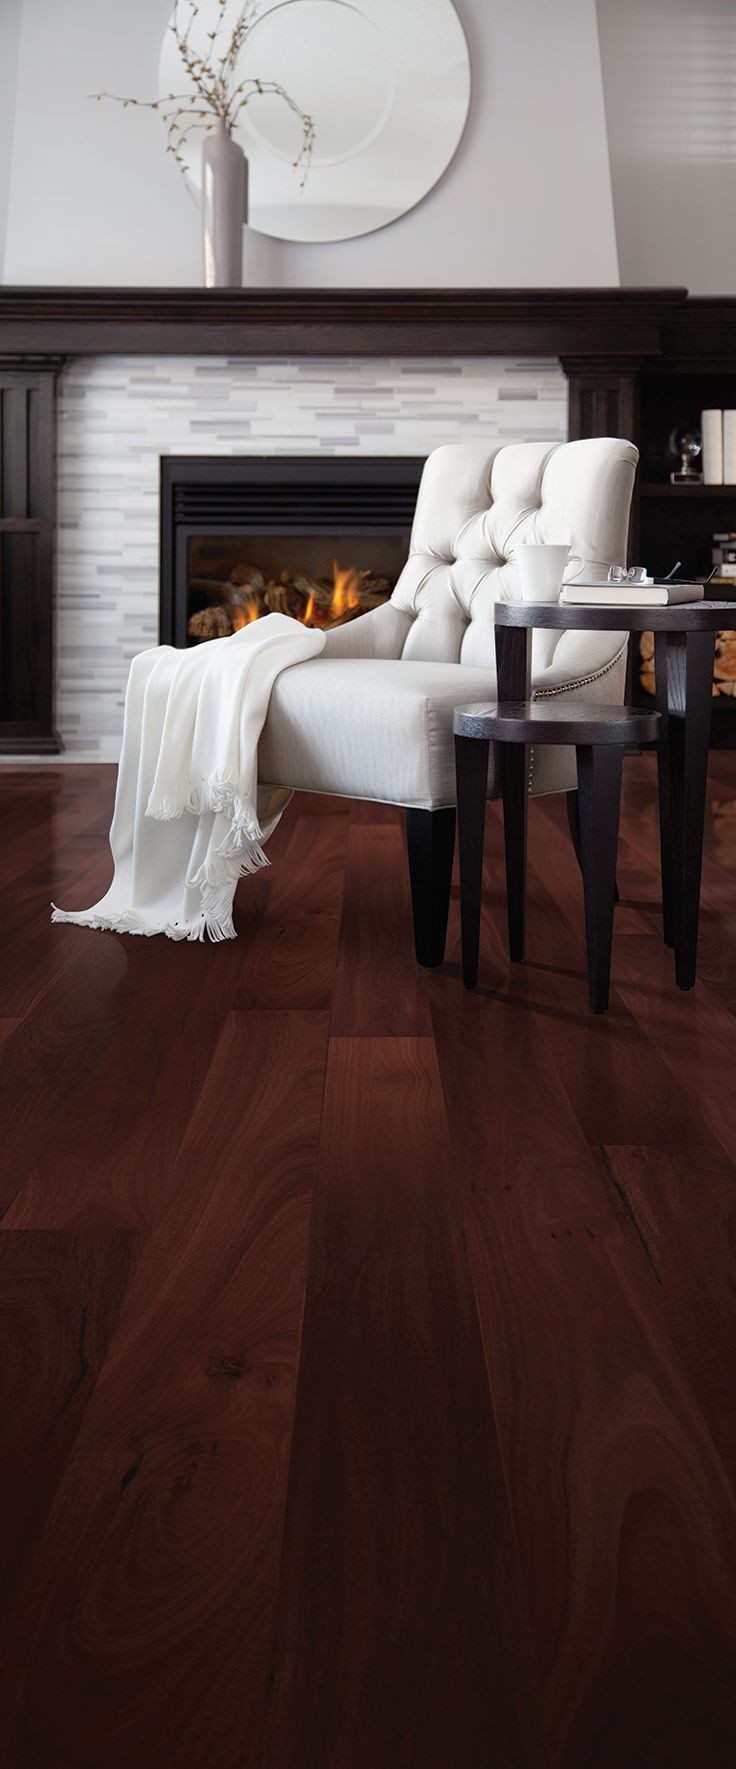 hardwood flooring cherry hill nj of godfrey hirst timber flooring get the look with timber naturals throughout godfrey hirst timber flooring get the look with timber naturals in jarrah godfreyhistflooring godfreyhirst flooring jarrah timber interiors